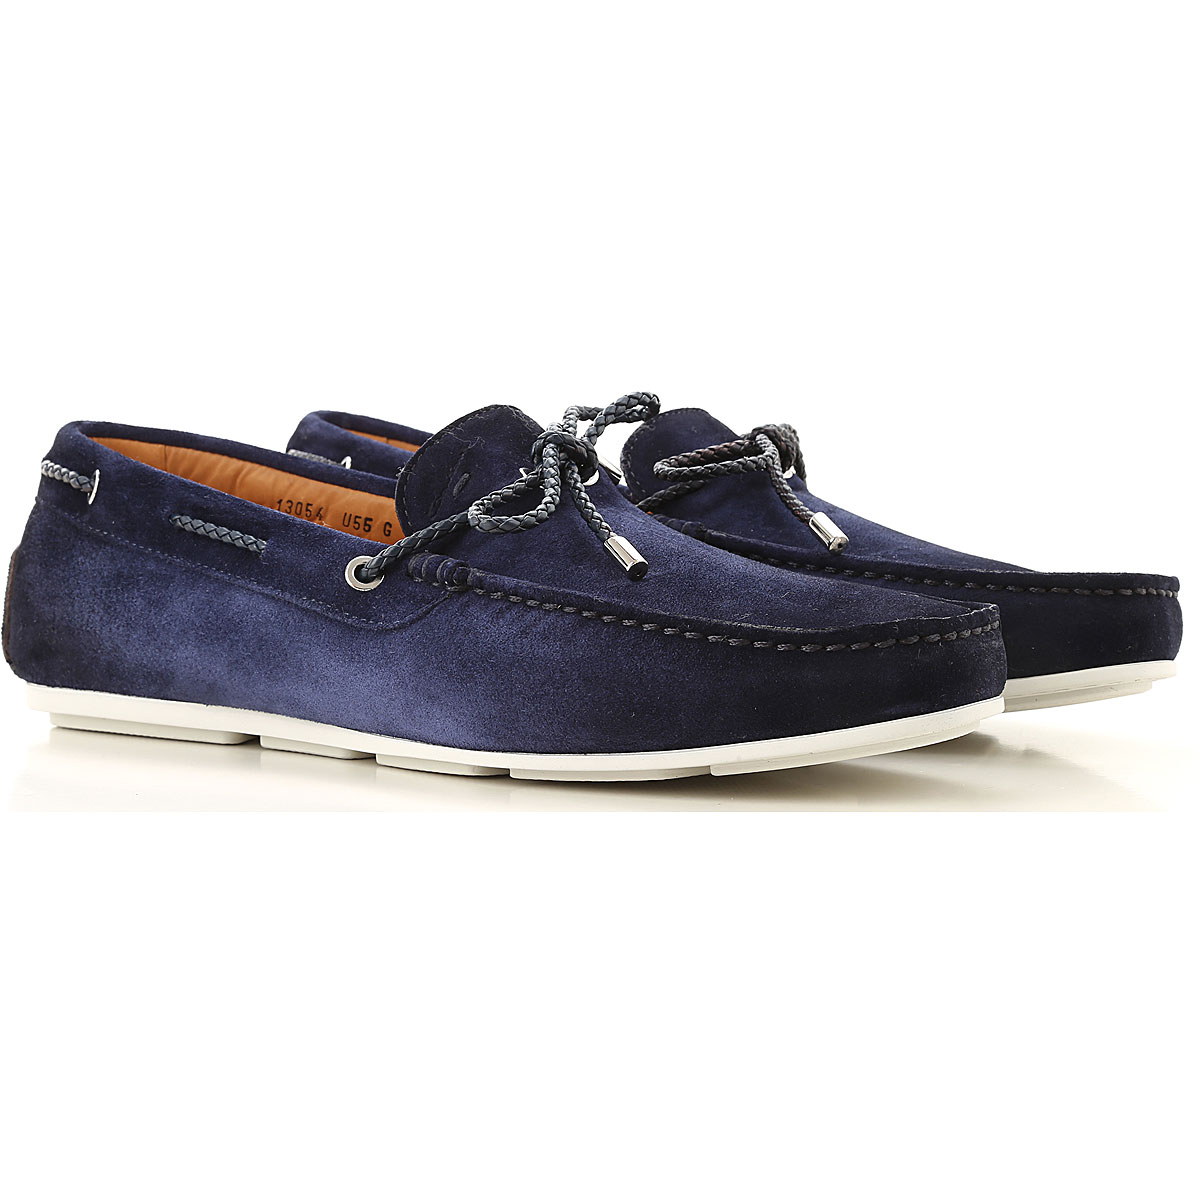 Santoni Loafers for Men, Midnight Blue, suede, 2019, 10 11 12 6 7 7.5 8 9